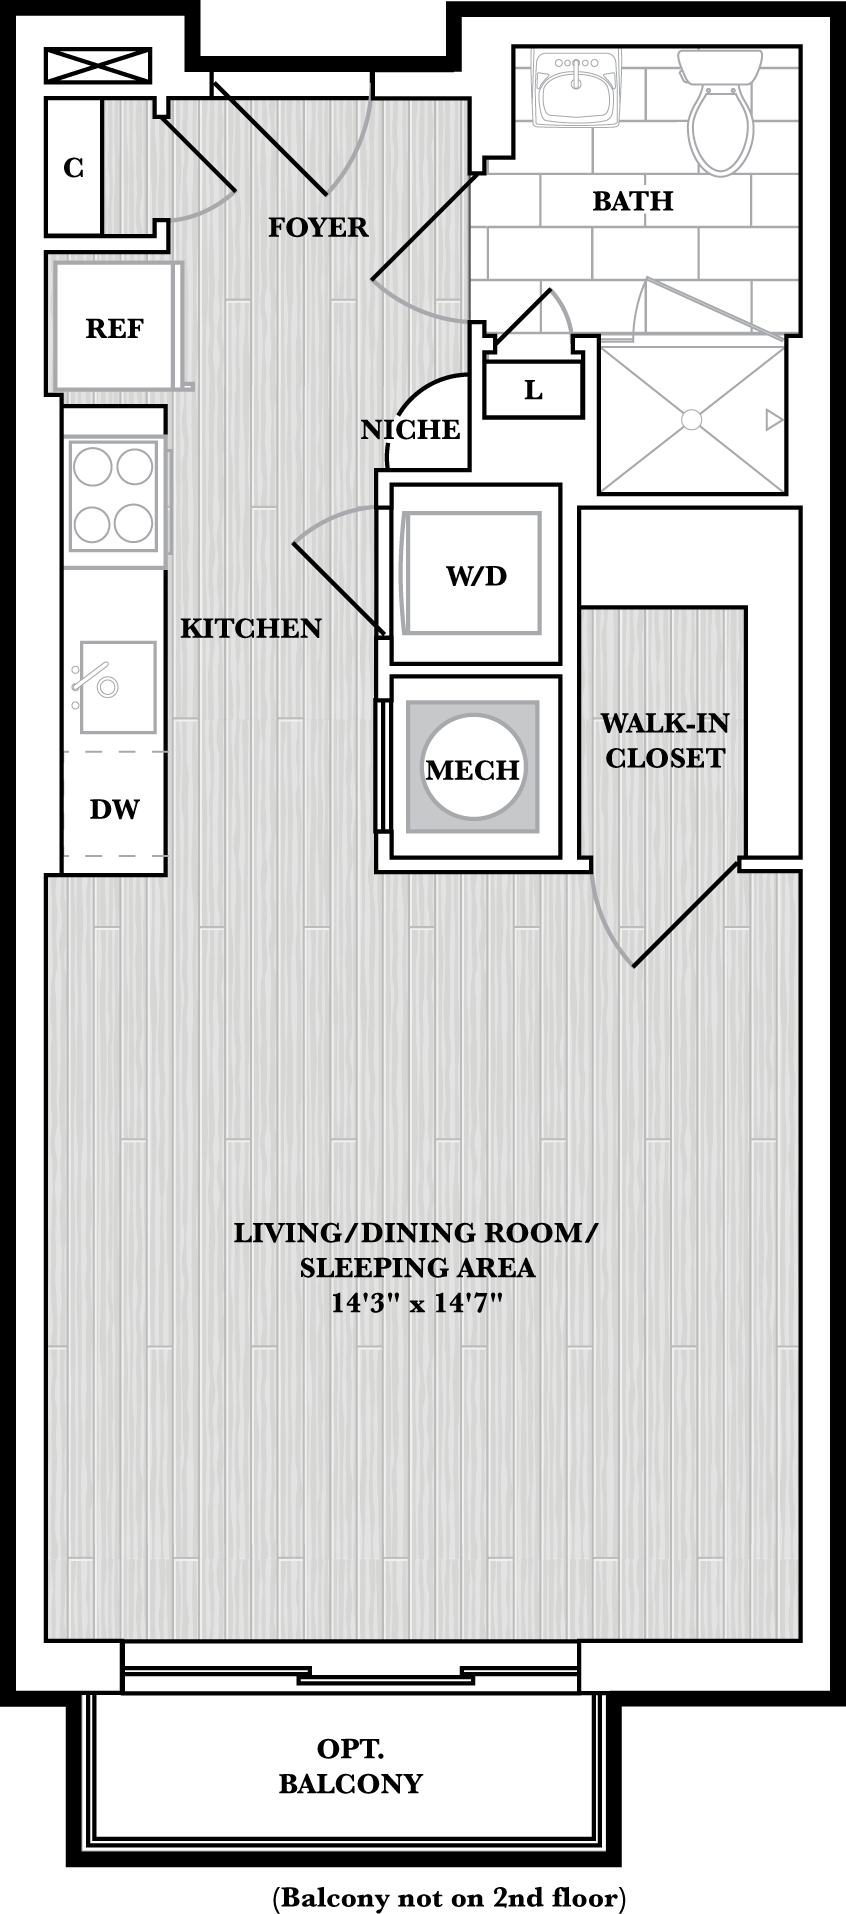 floorplan image of N415